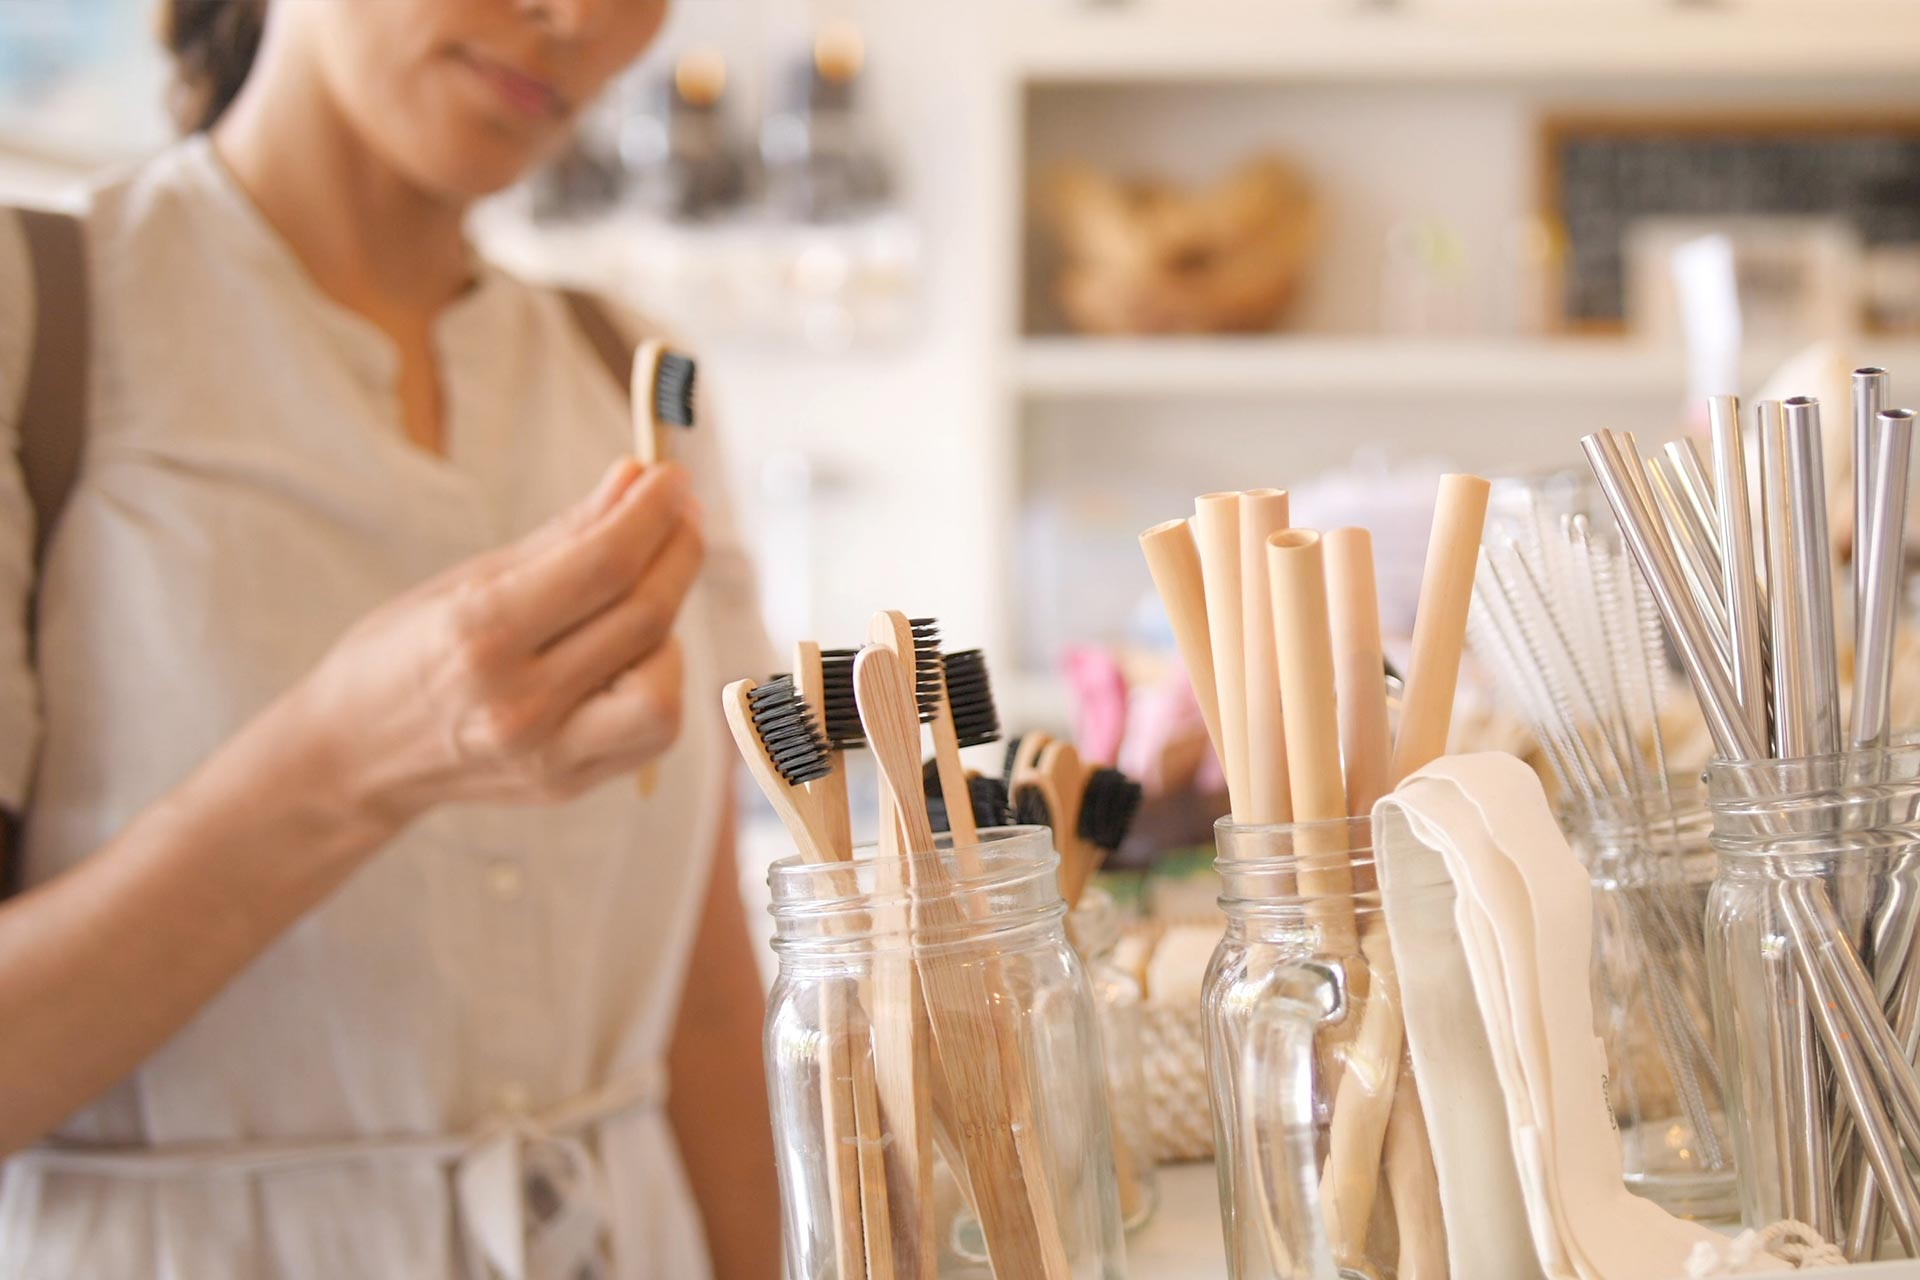 Woman shopping for sustainable living products including toothbrushes and straws